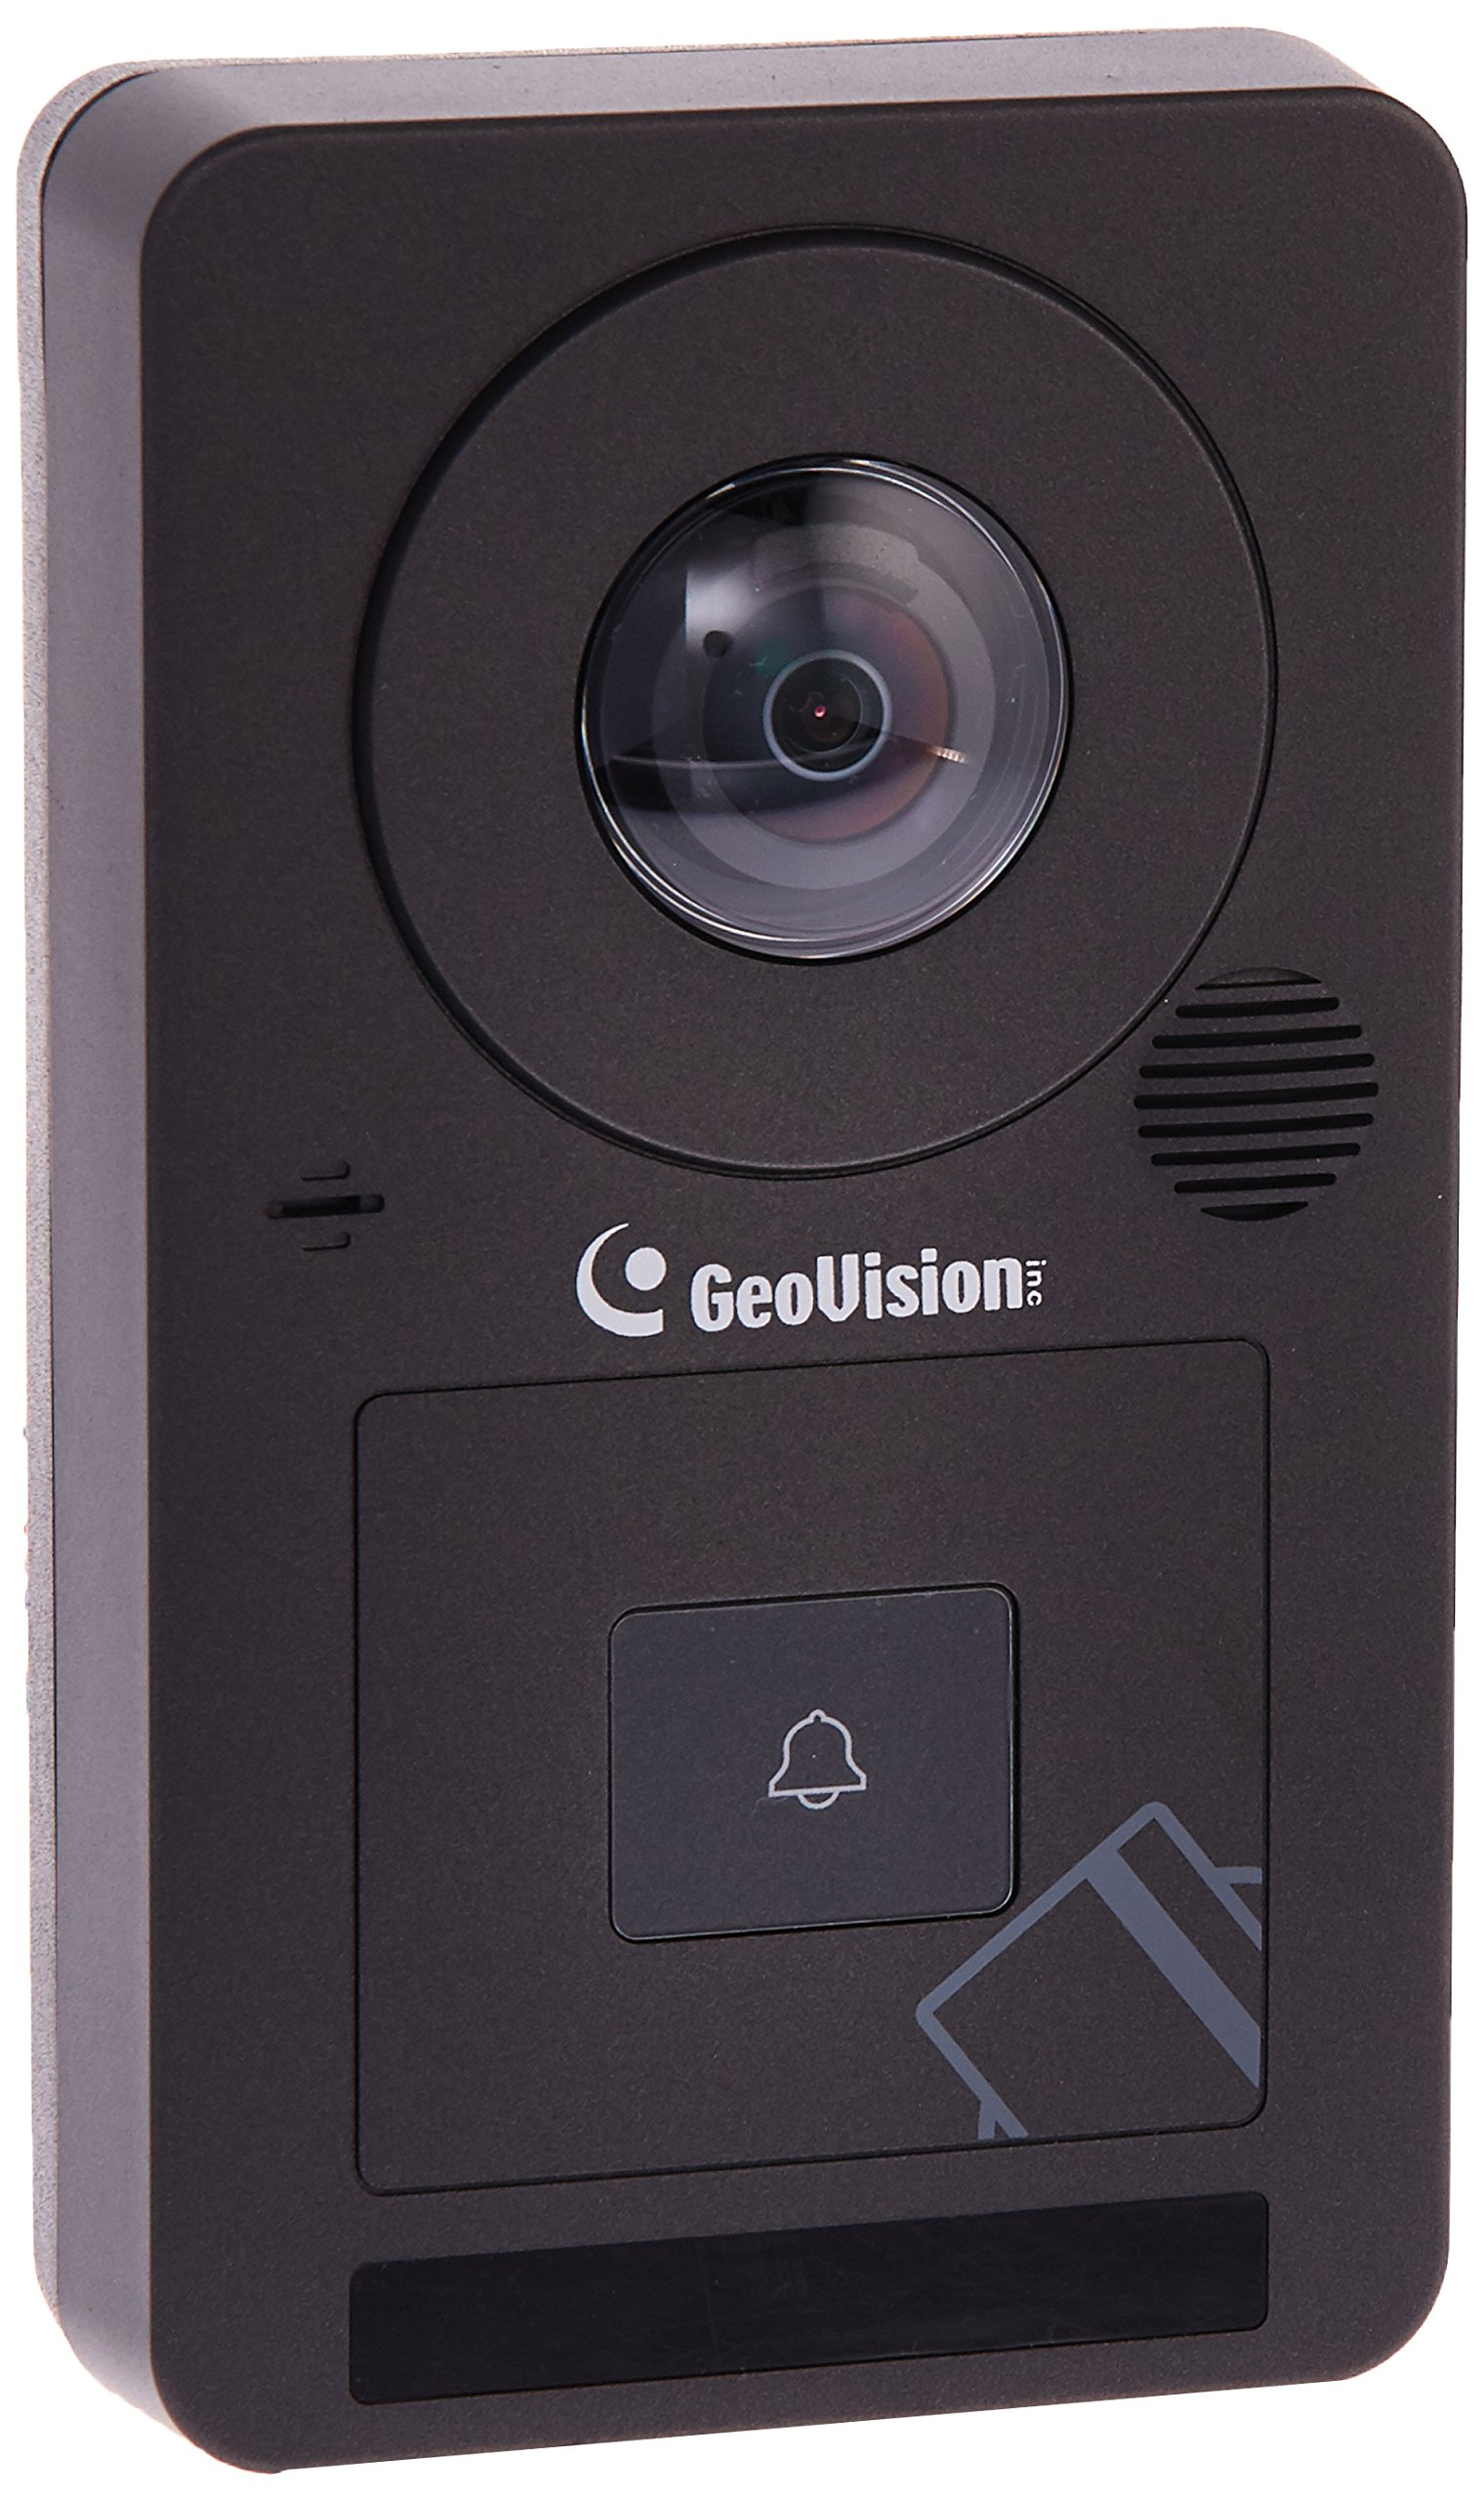 GeoVision GV-CS1320 2MP H.264 Camera Face Detection Access Controller with 180-degree panoramic lens and built-in 13.56 MHz Reader by GeoVision